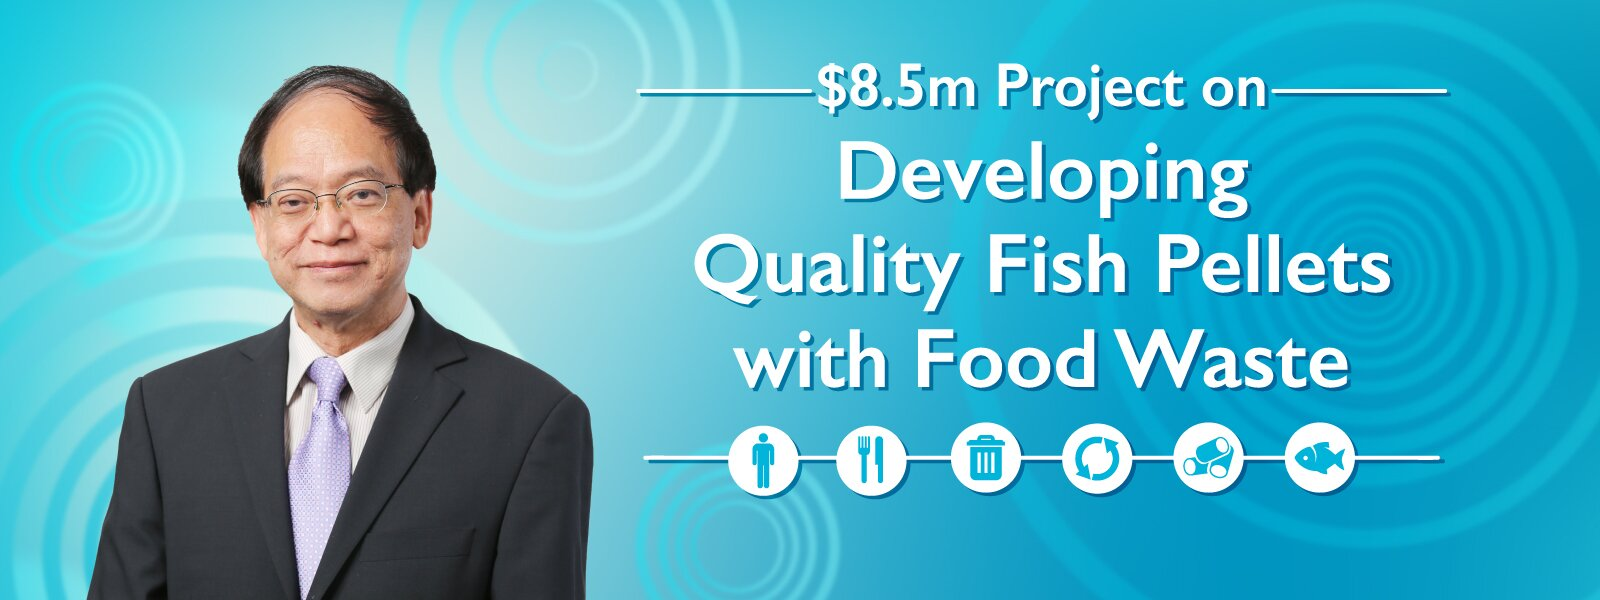 $8.5m Project on Developing Quality Fish Pellets with Food Waste